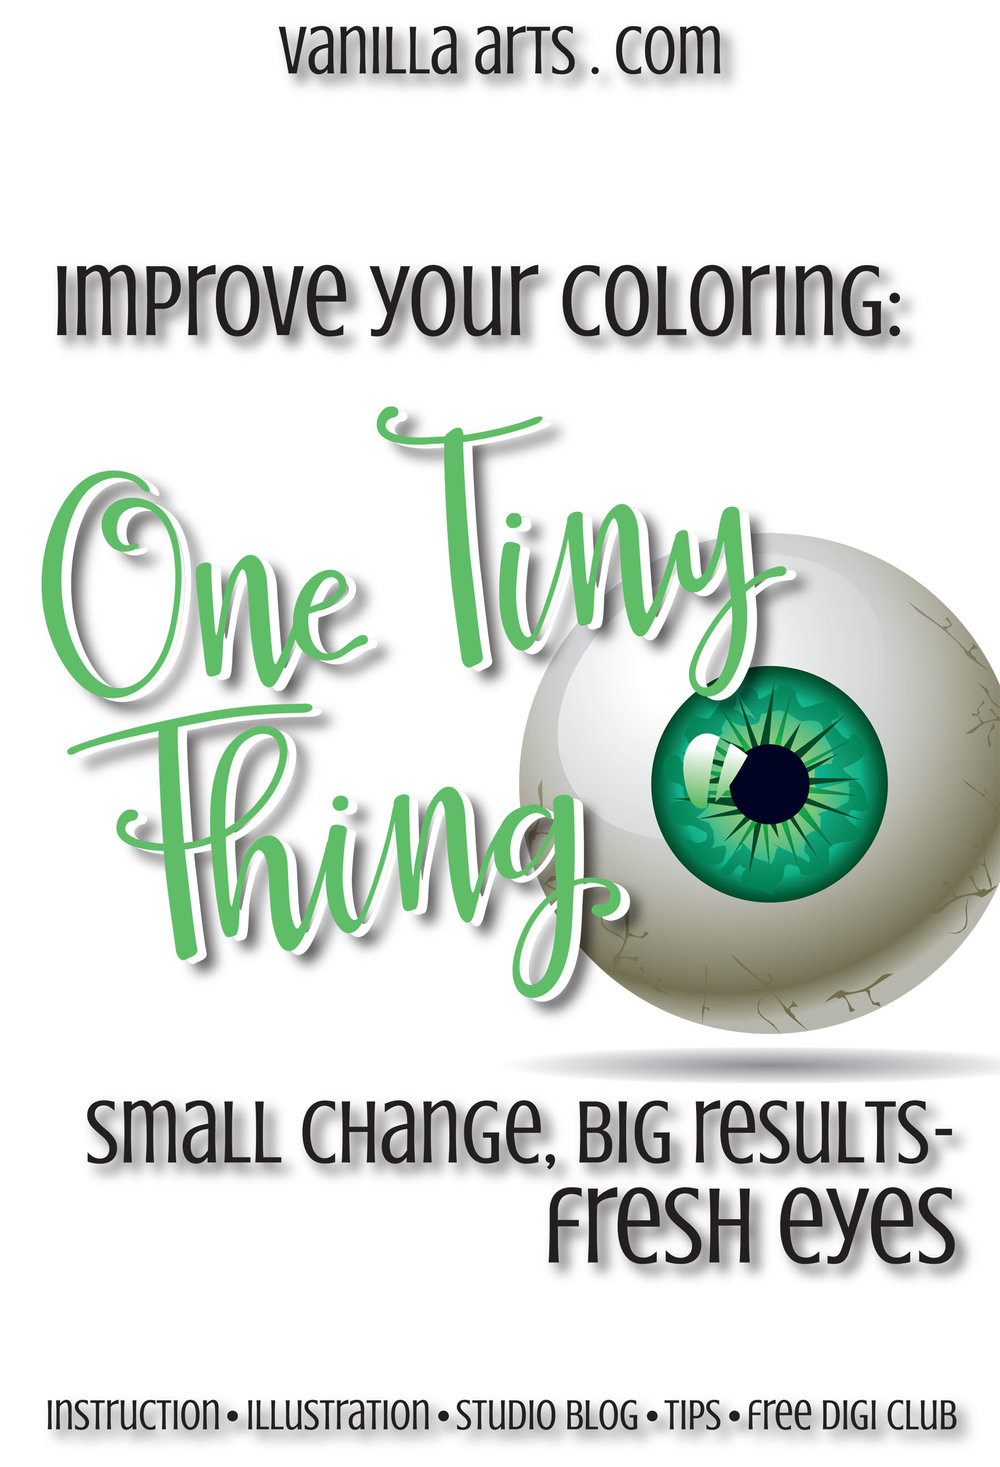 One Tiny Thing can improve your Copic coloring TODAY! Fresh eyes. | VanillaArts.com